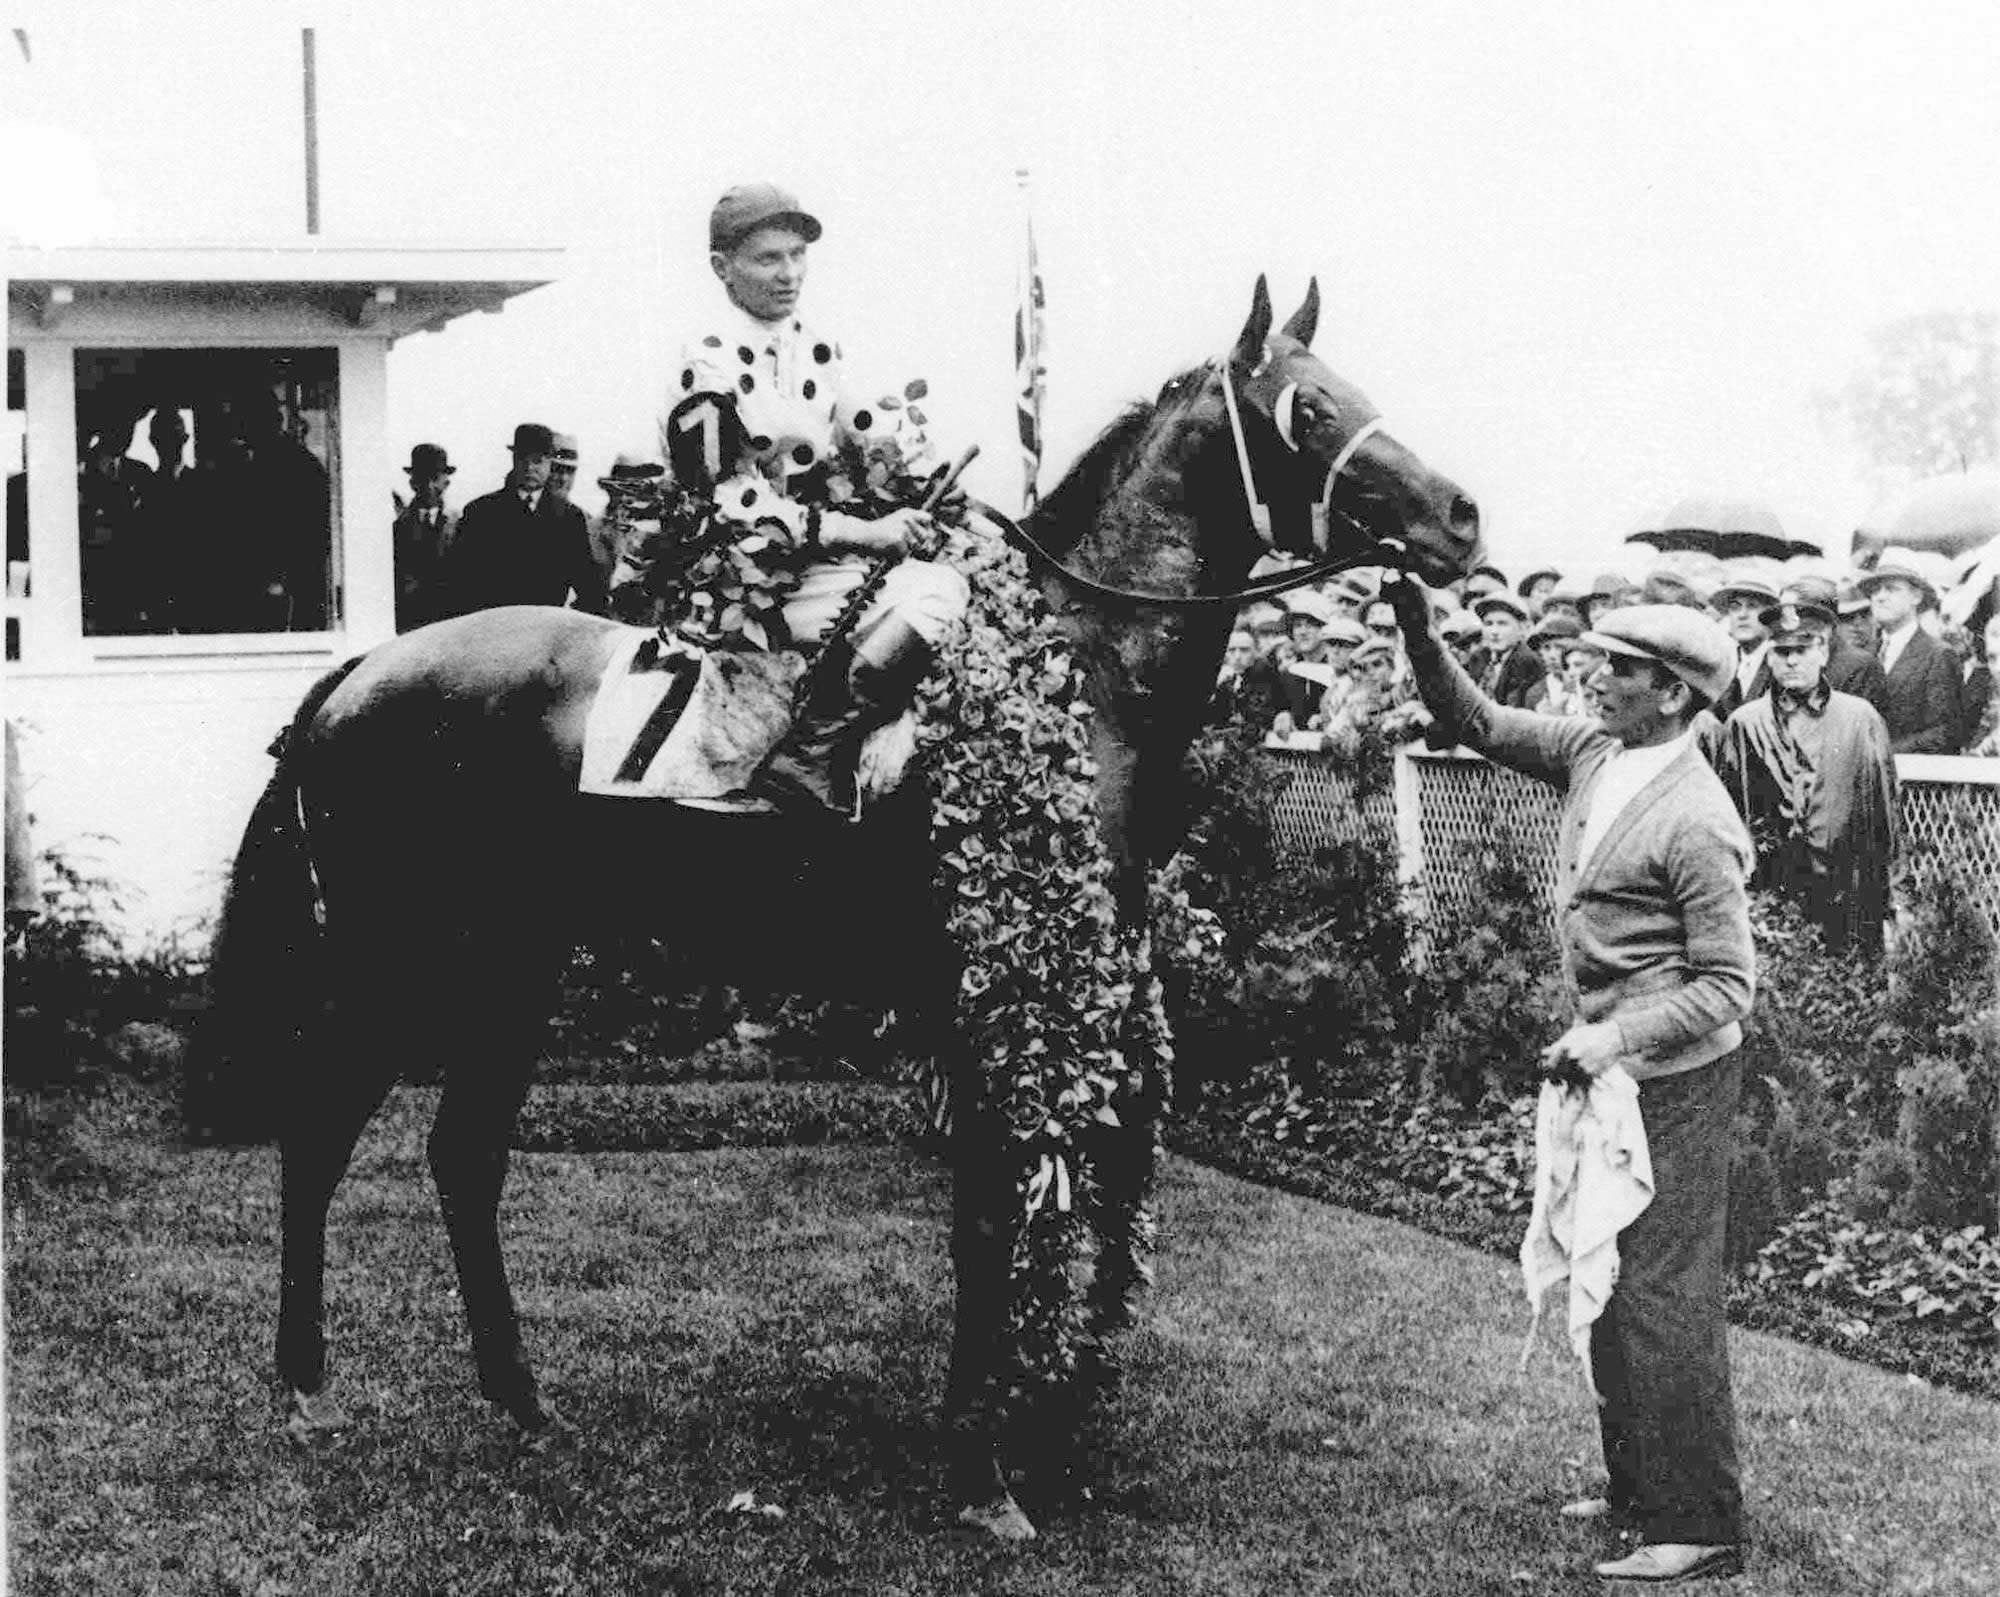 1930: Gallant Fox, with jockey Earl Sande